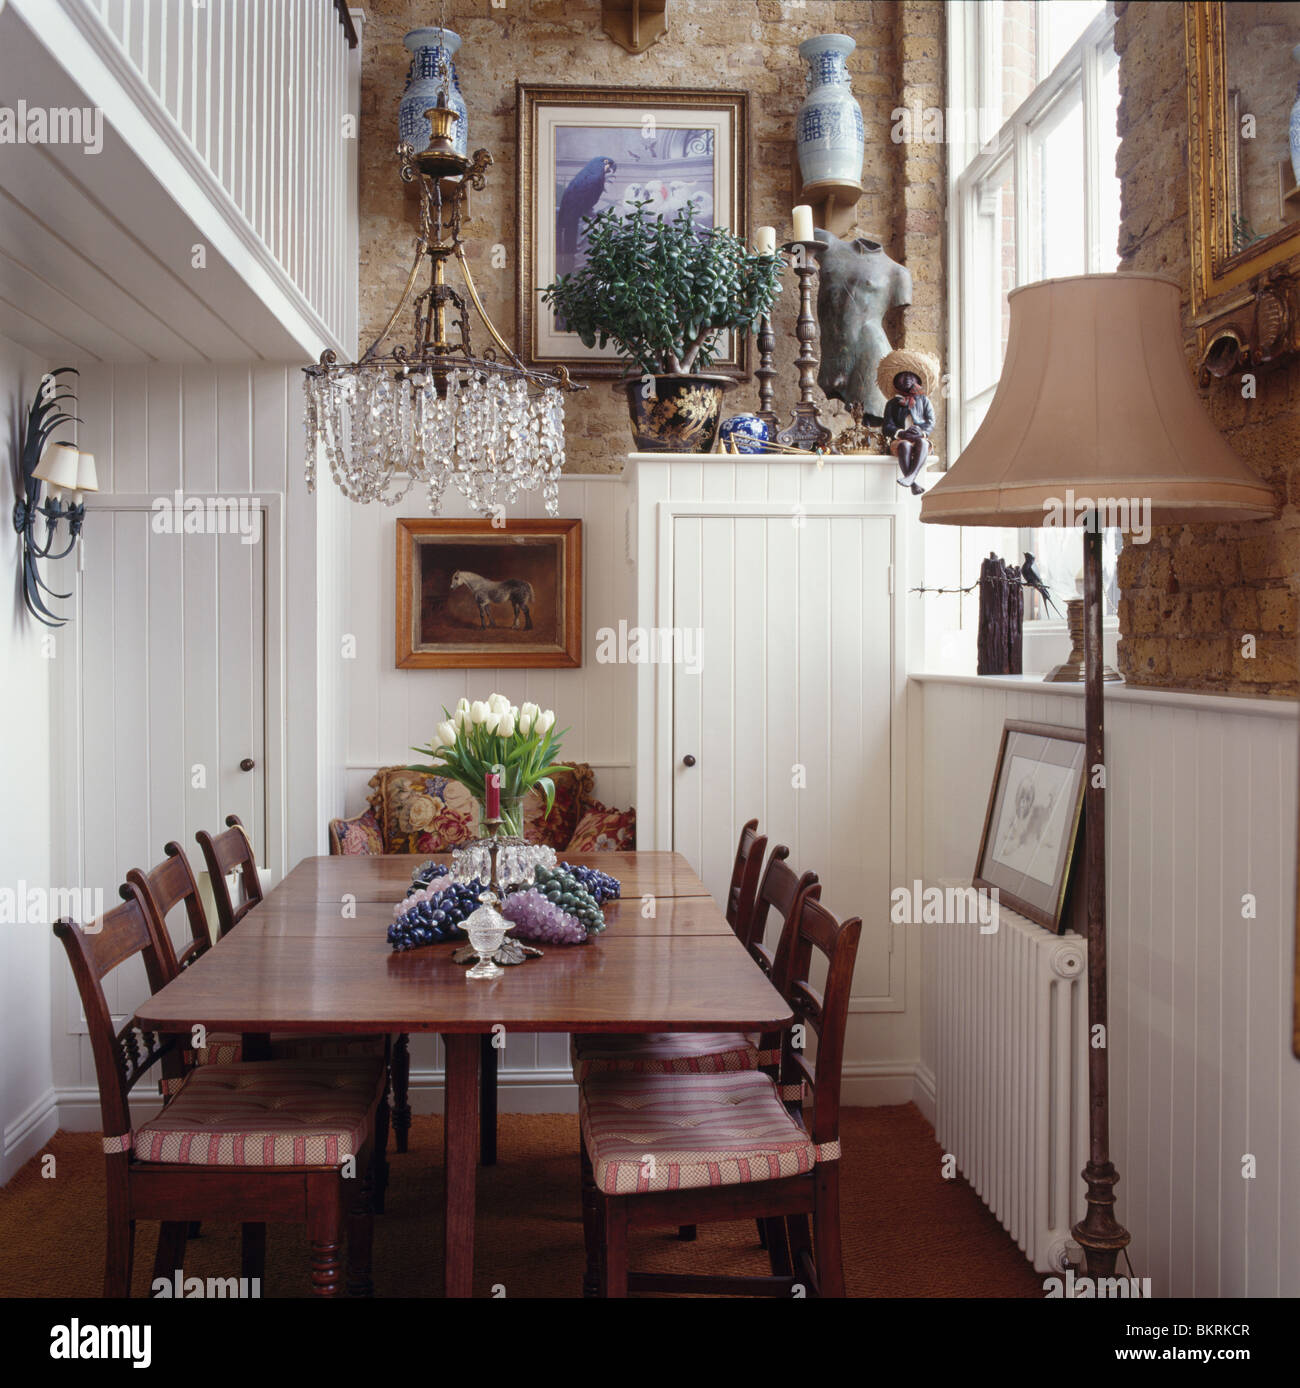 Chandelier Above Antique Table And Chairs In Small White Paneled Double Height Dining Room